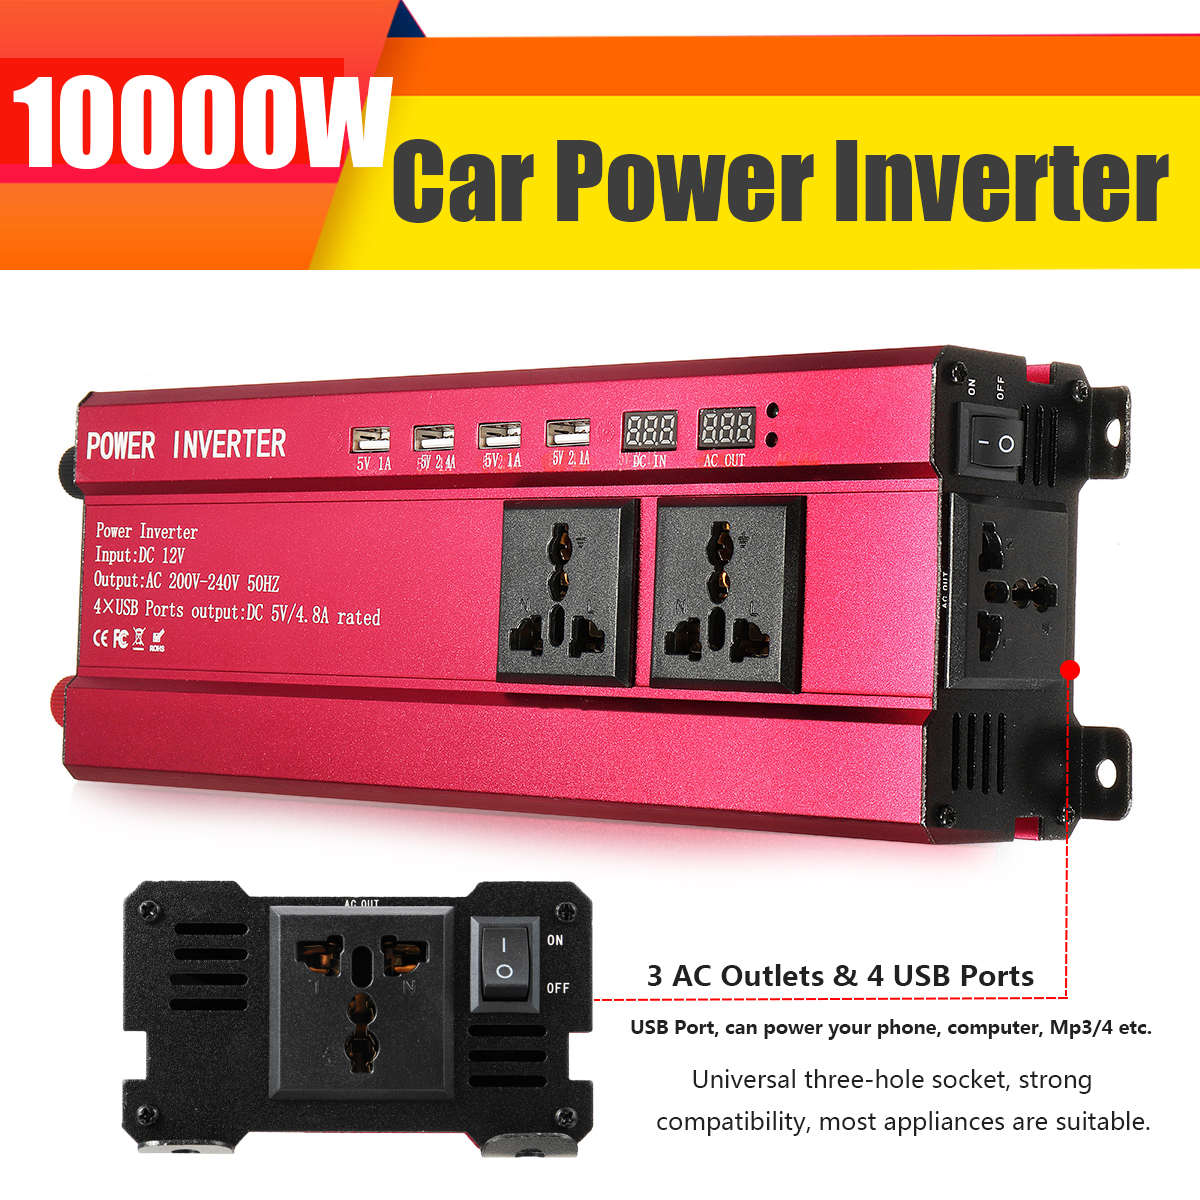 P Eak 10000W Car Solar Power Inverter DC 12V To AC 200-240V Sine Wave USB Converter Voltage Transformer USB Modified Sine Wave